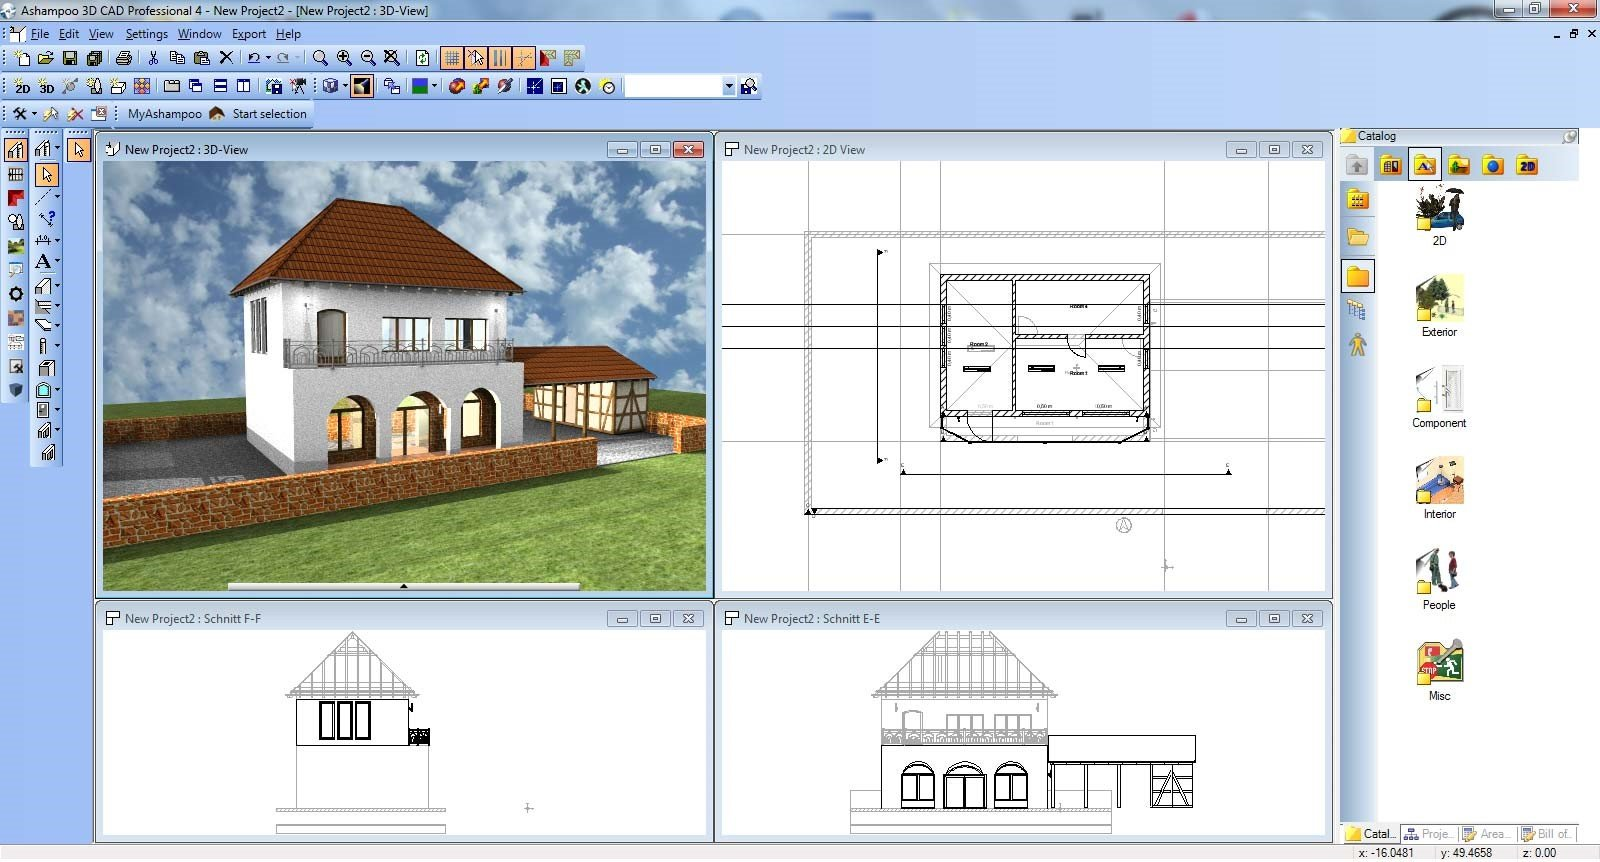 Ashampoo 3d cad professional alternatives and similar Free 3d cad software